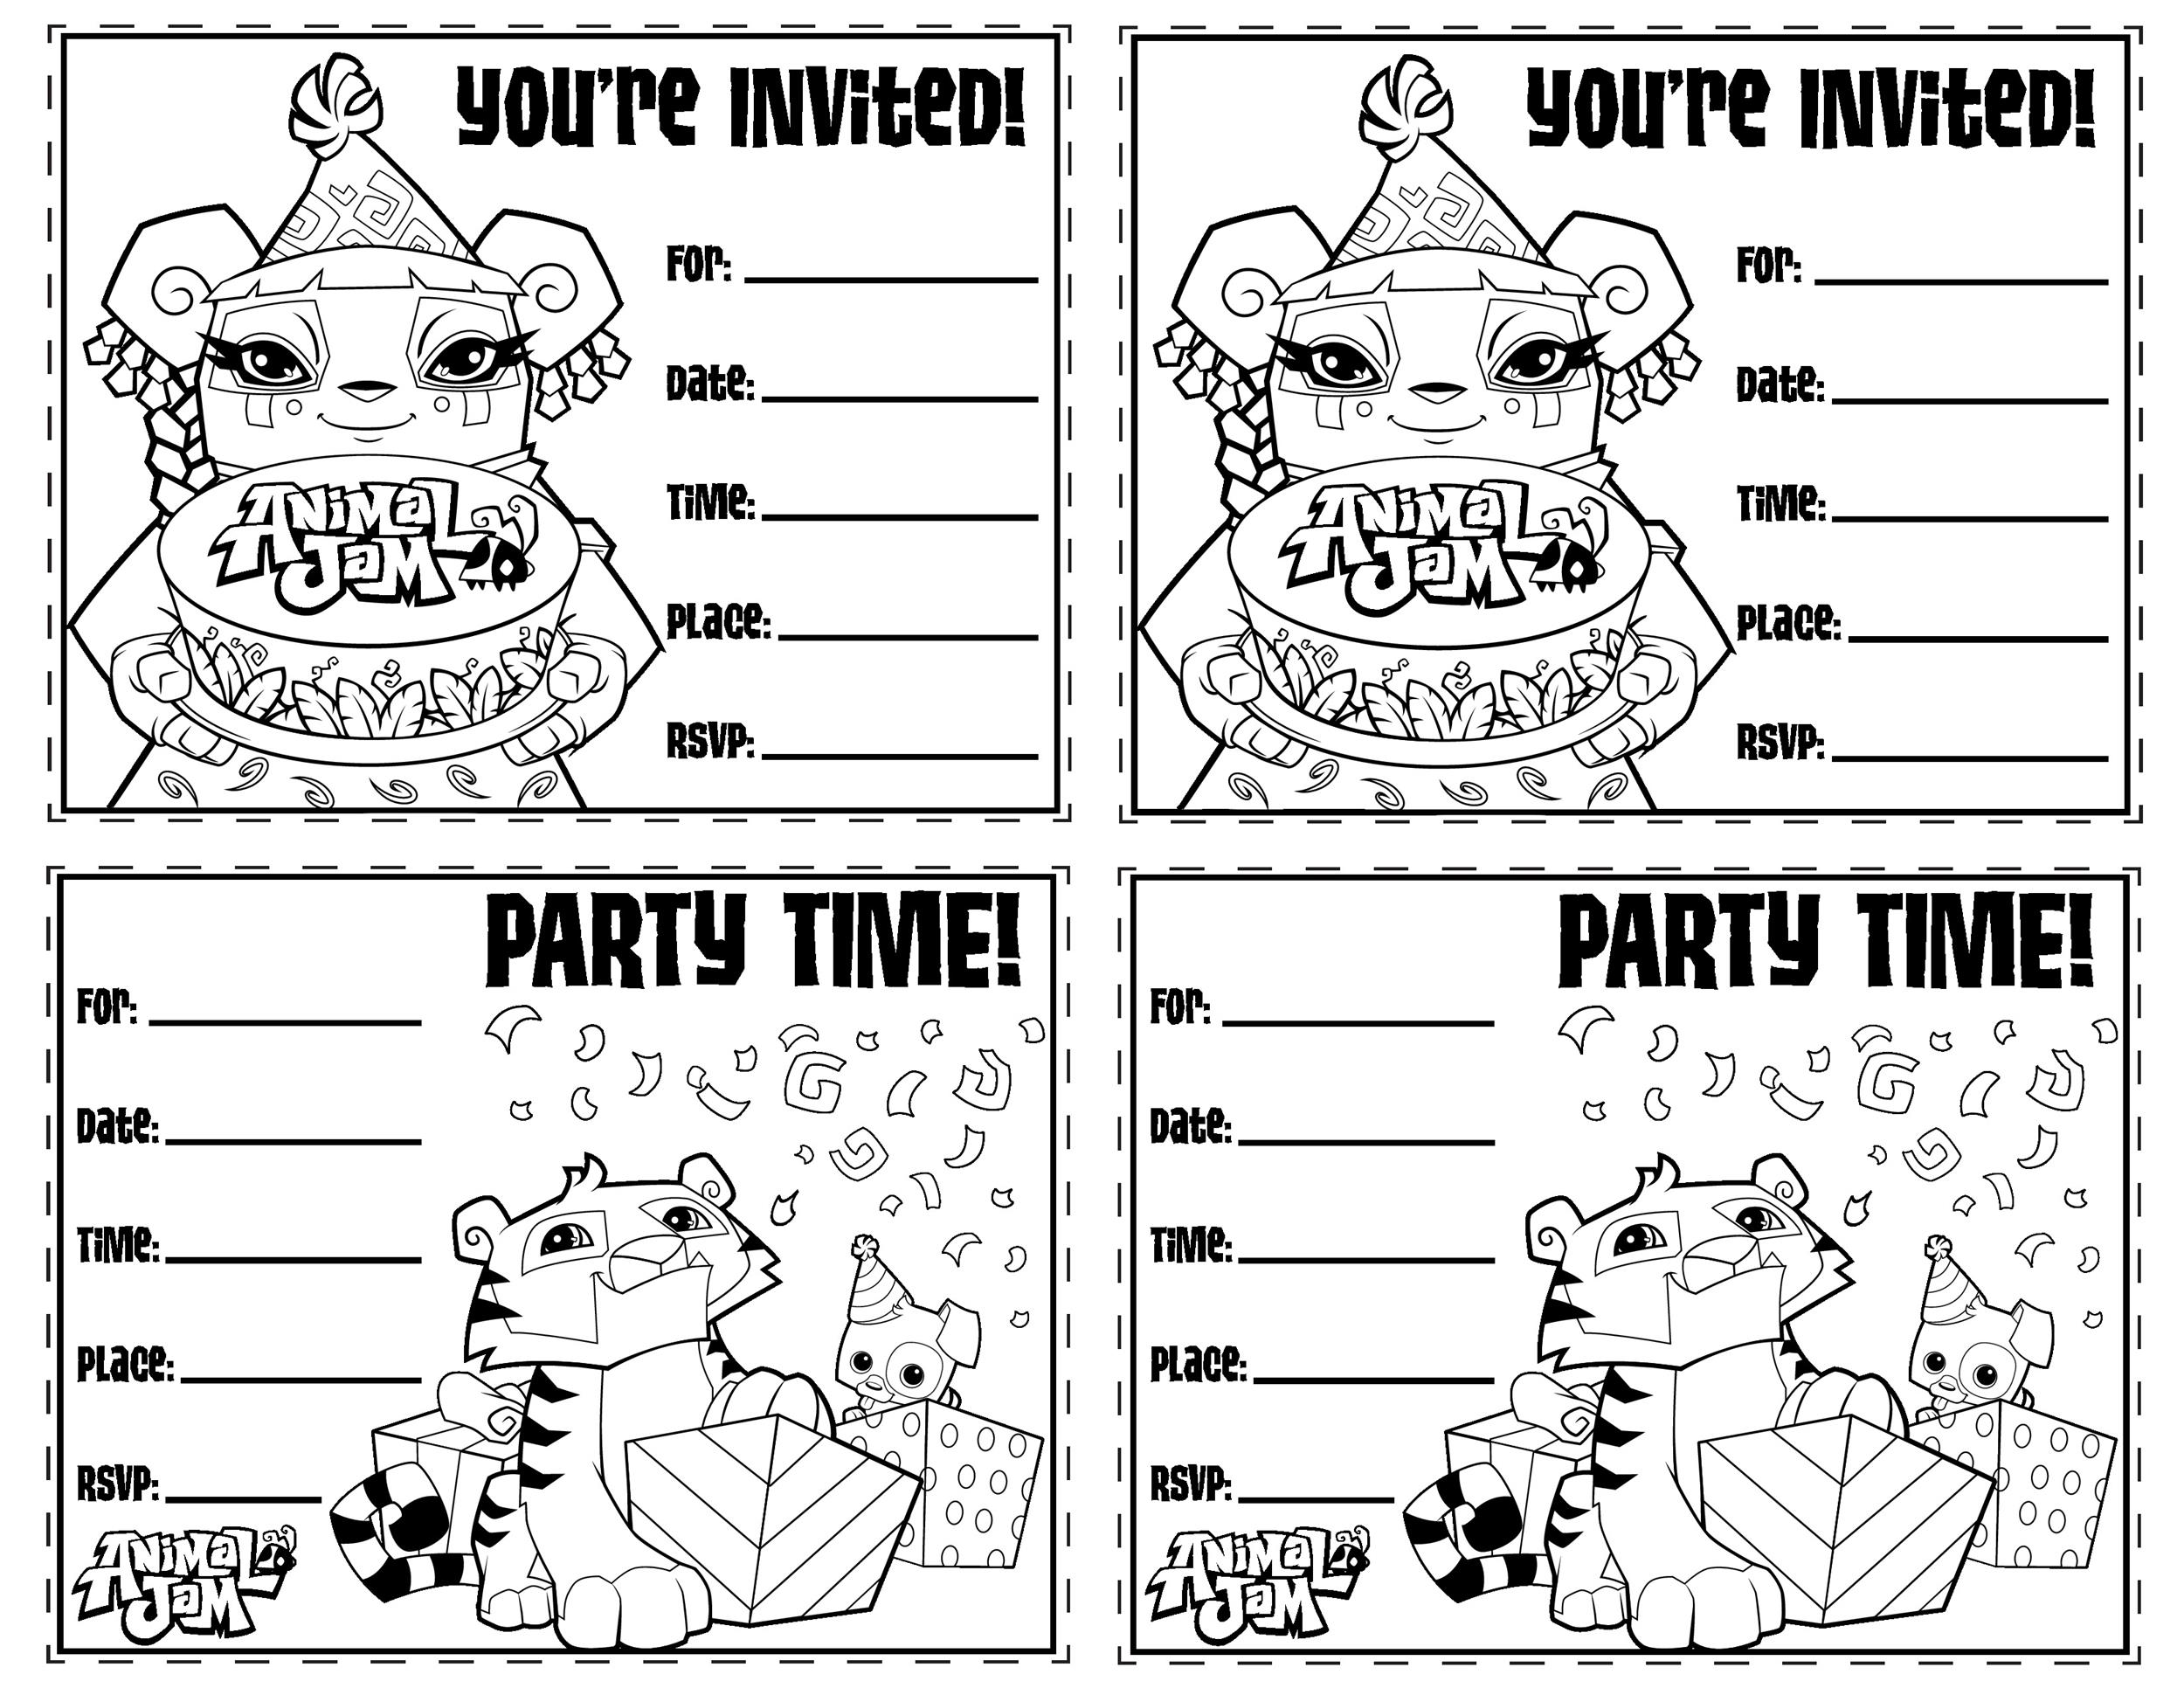 40+ Free Birthday Party Invitation Templates - Template Lab - birthday party card template